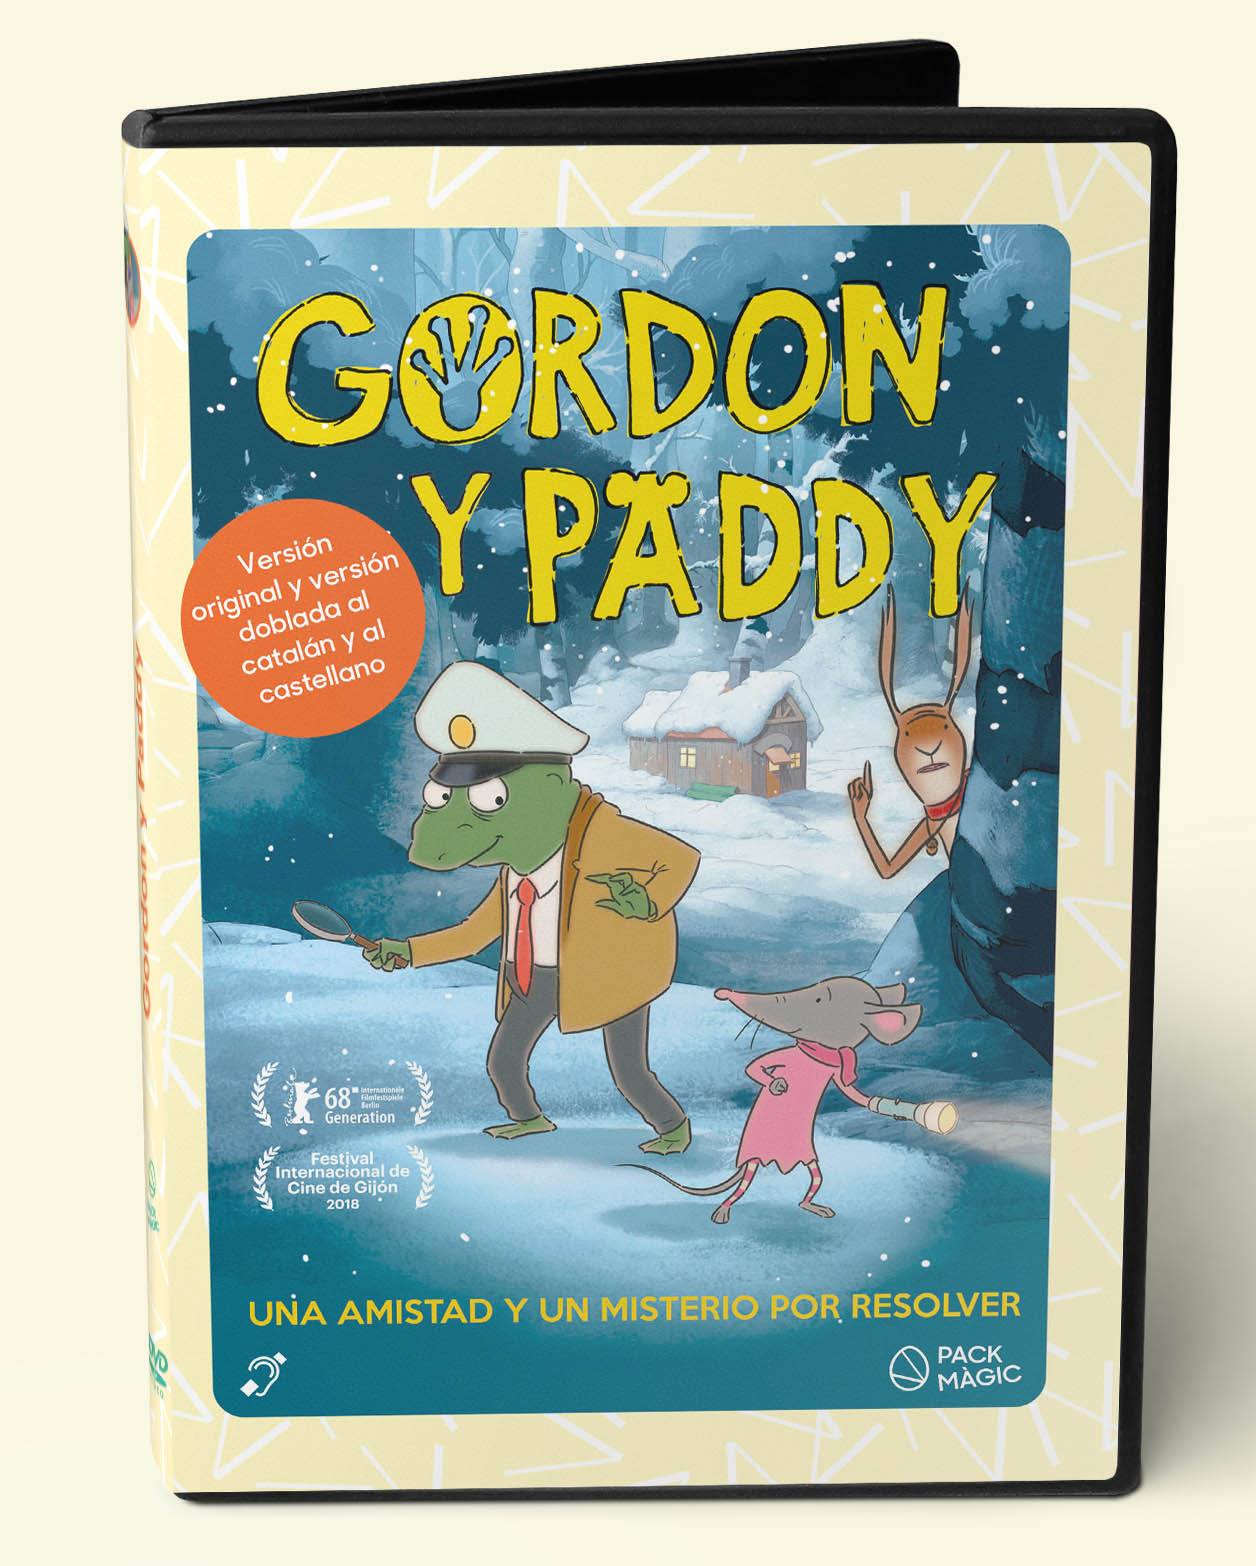 Gordon i paddy